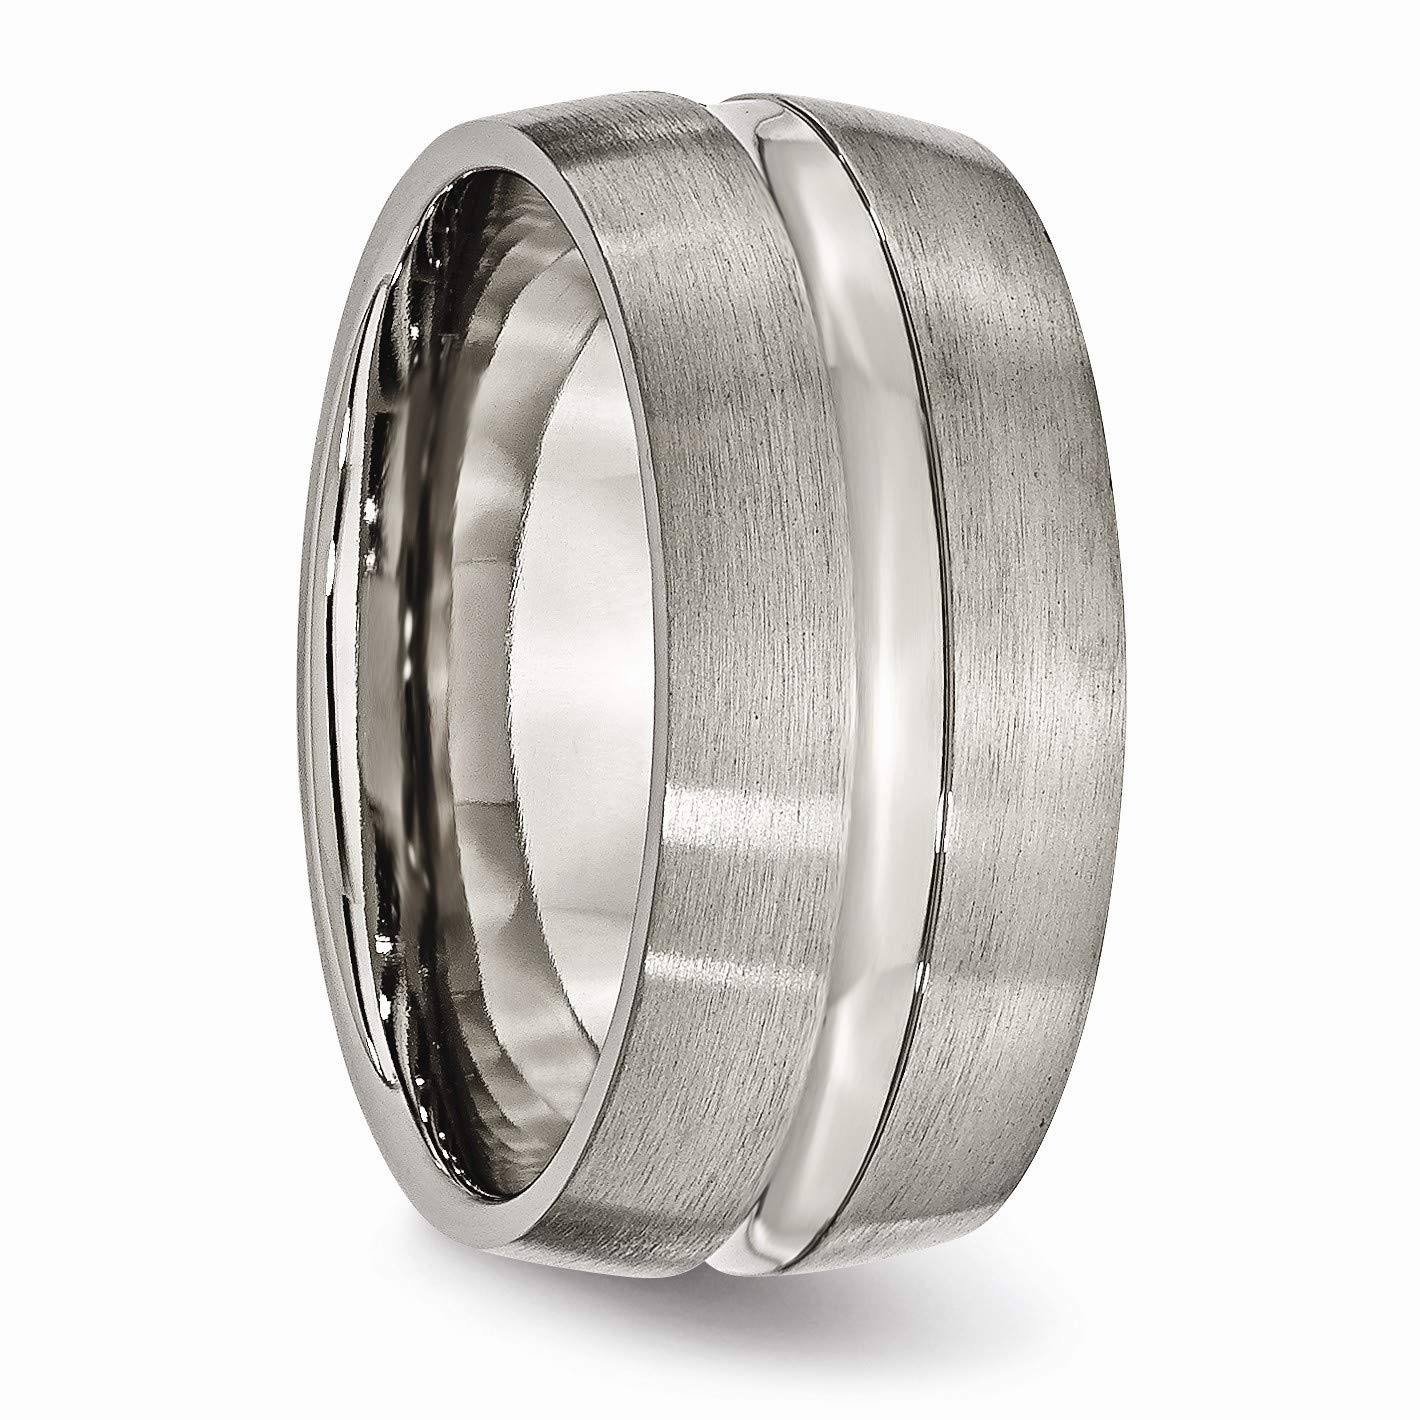 The Black Bow Titanium 10mm Center Grooved Band